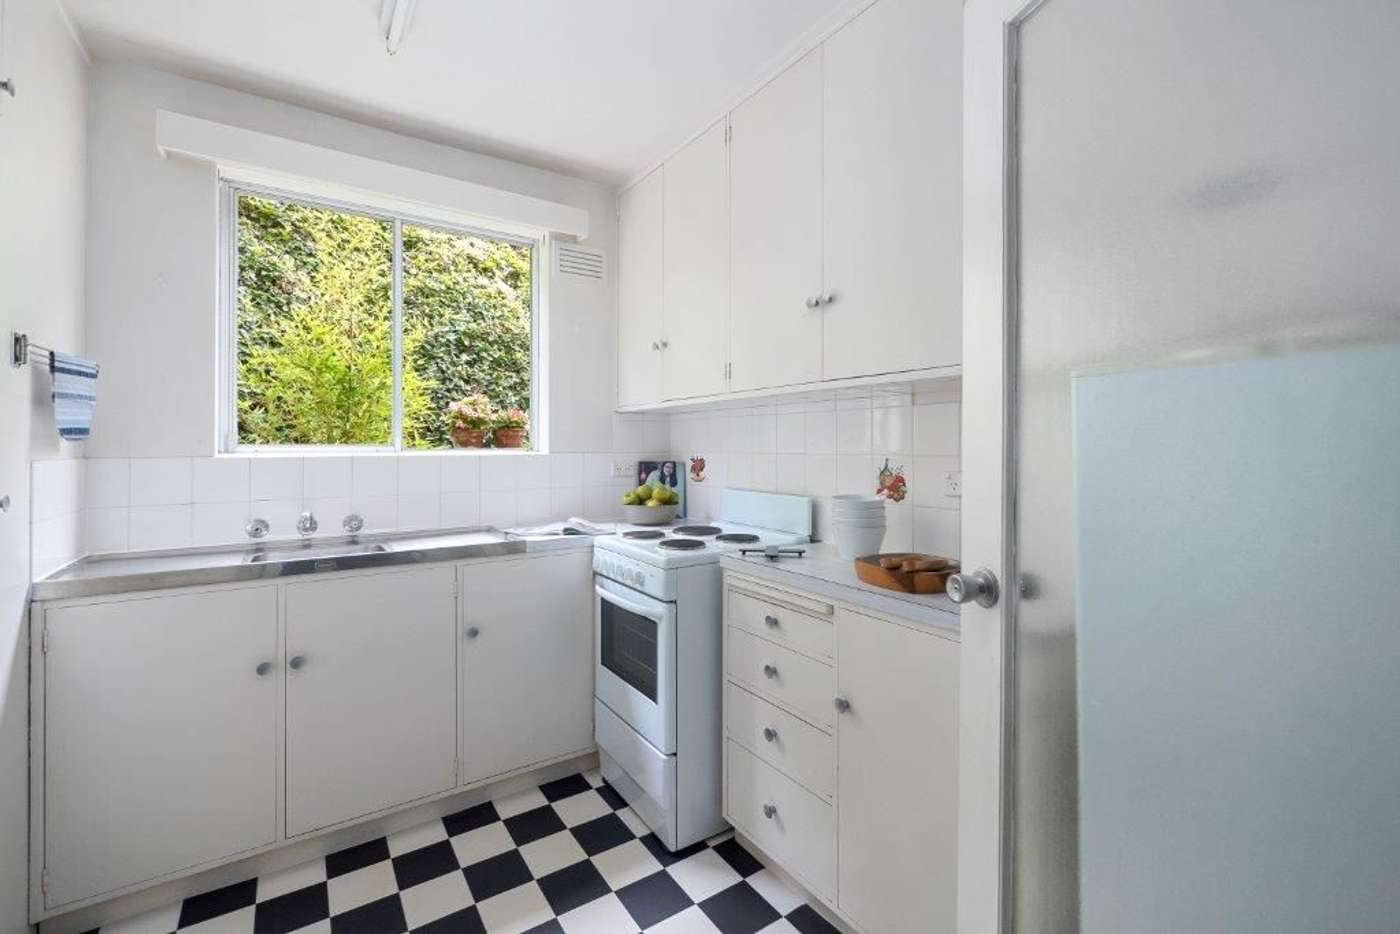 Sixth view of Homely apartment listing, 2/50 Marieville Esplanade, Sandy Bay TAS 7005